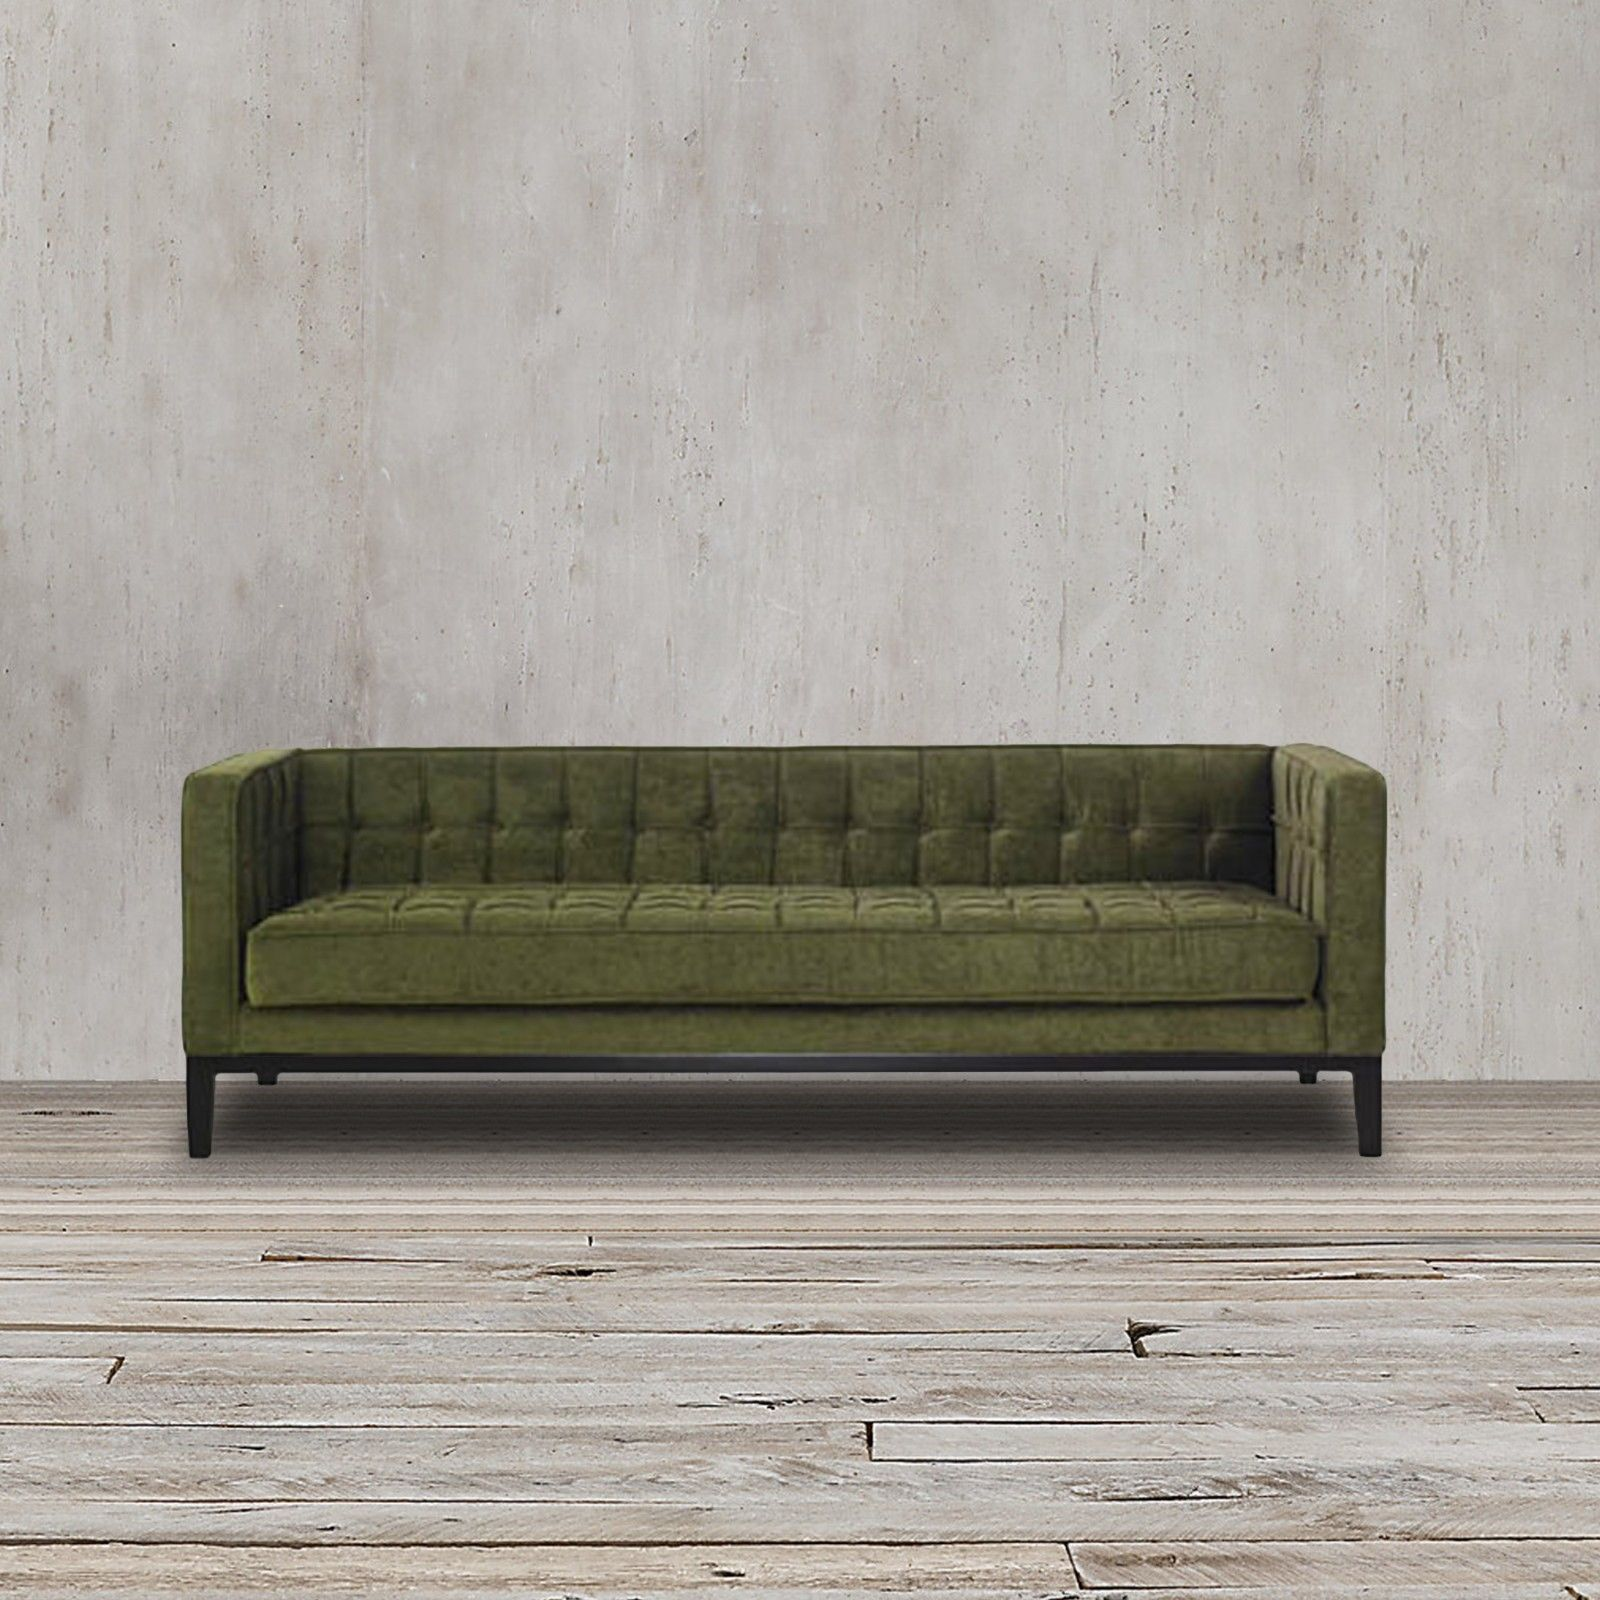 This green tuxedo sofa couch features a stylish retro and modern